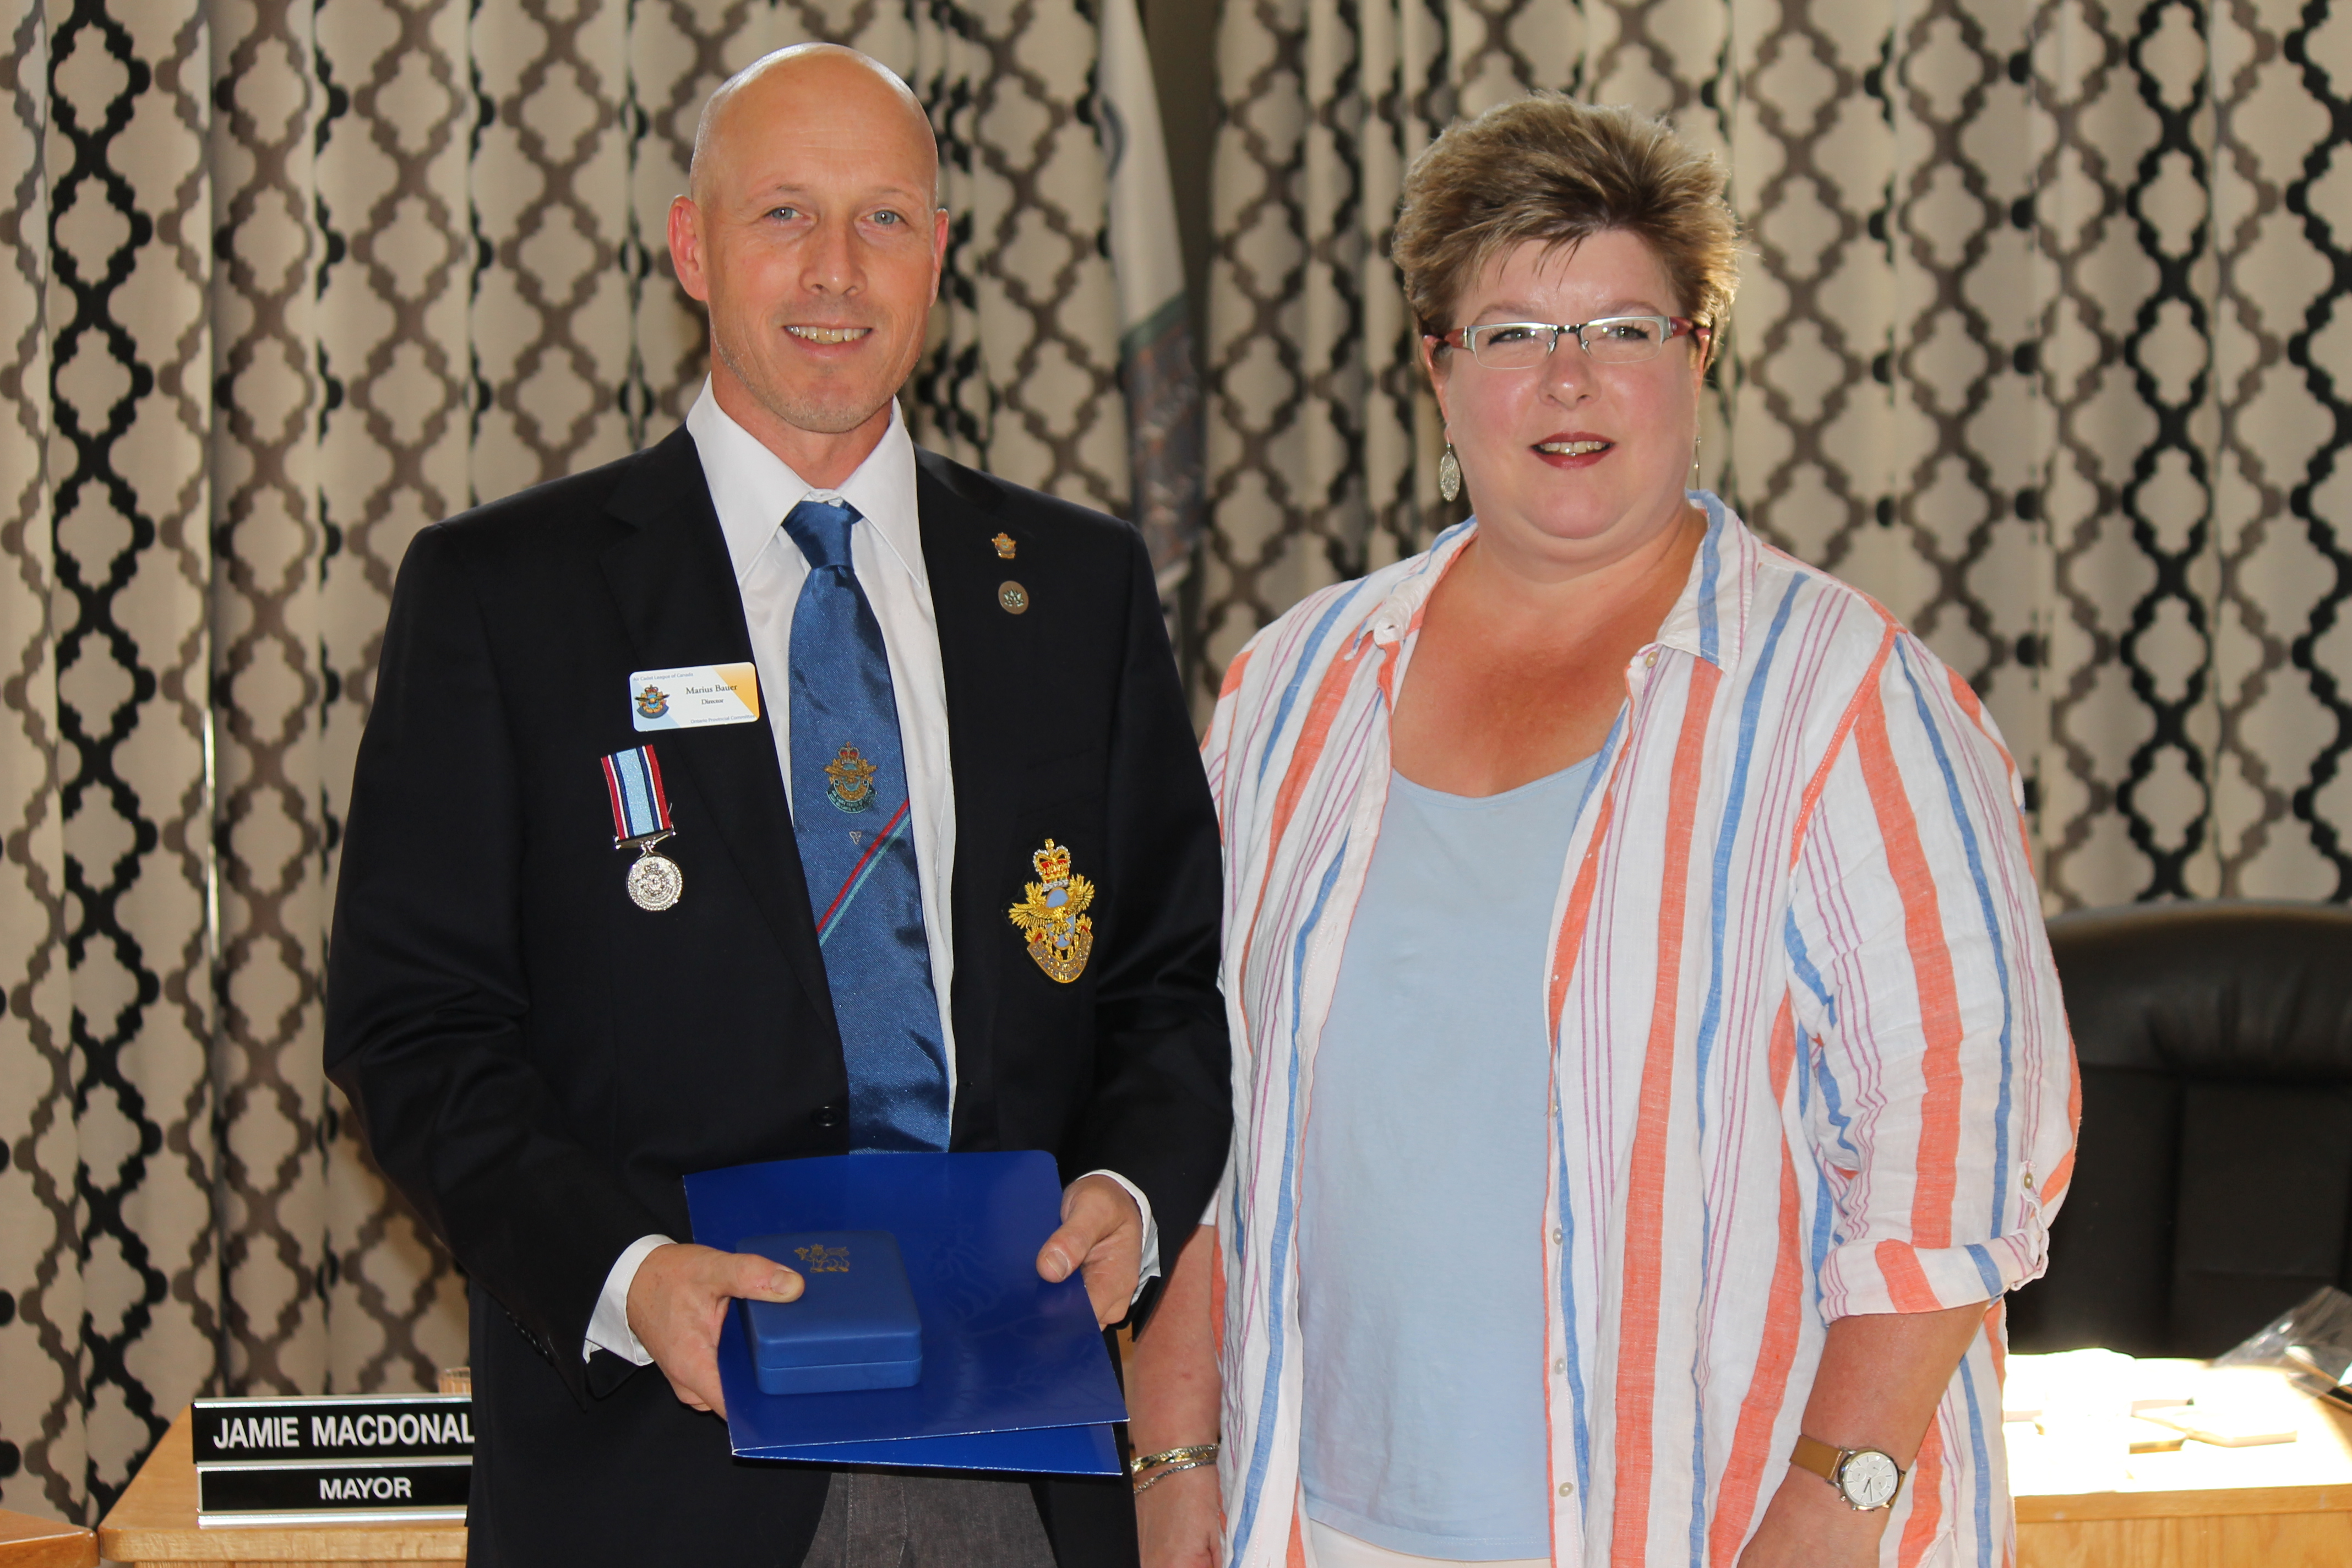 Marius Bauer received Sovereign's Medal for Volunteers